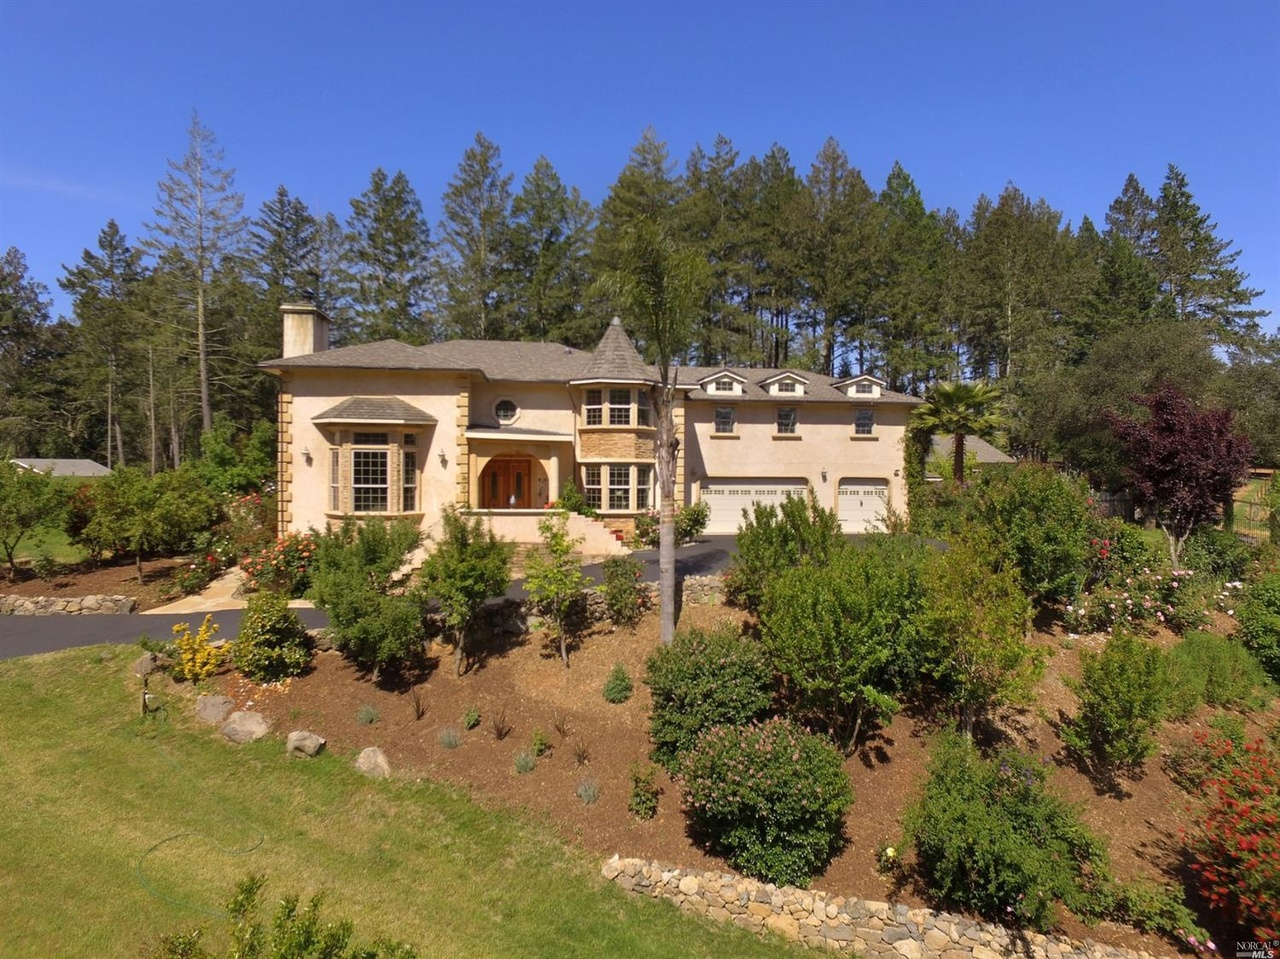 1014 Westside Rd, Healdsburg, CA 95448 | MLS# 21811050 | Redfin